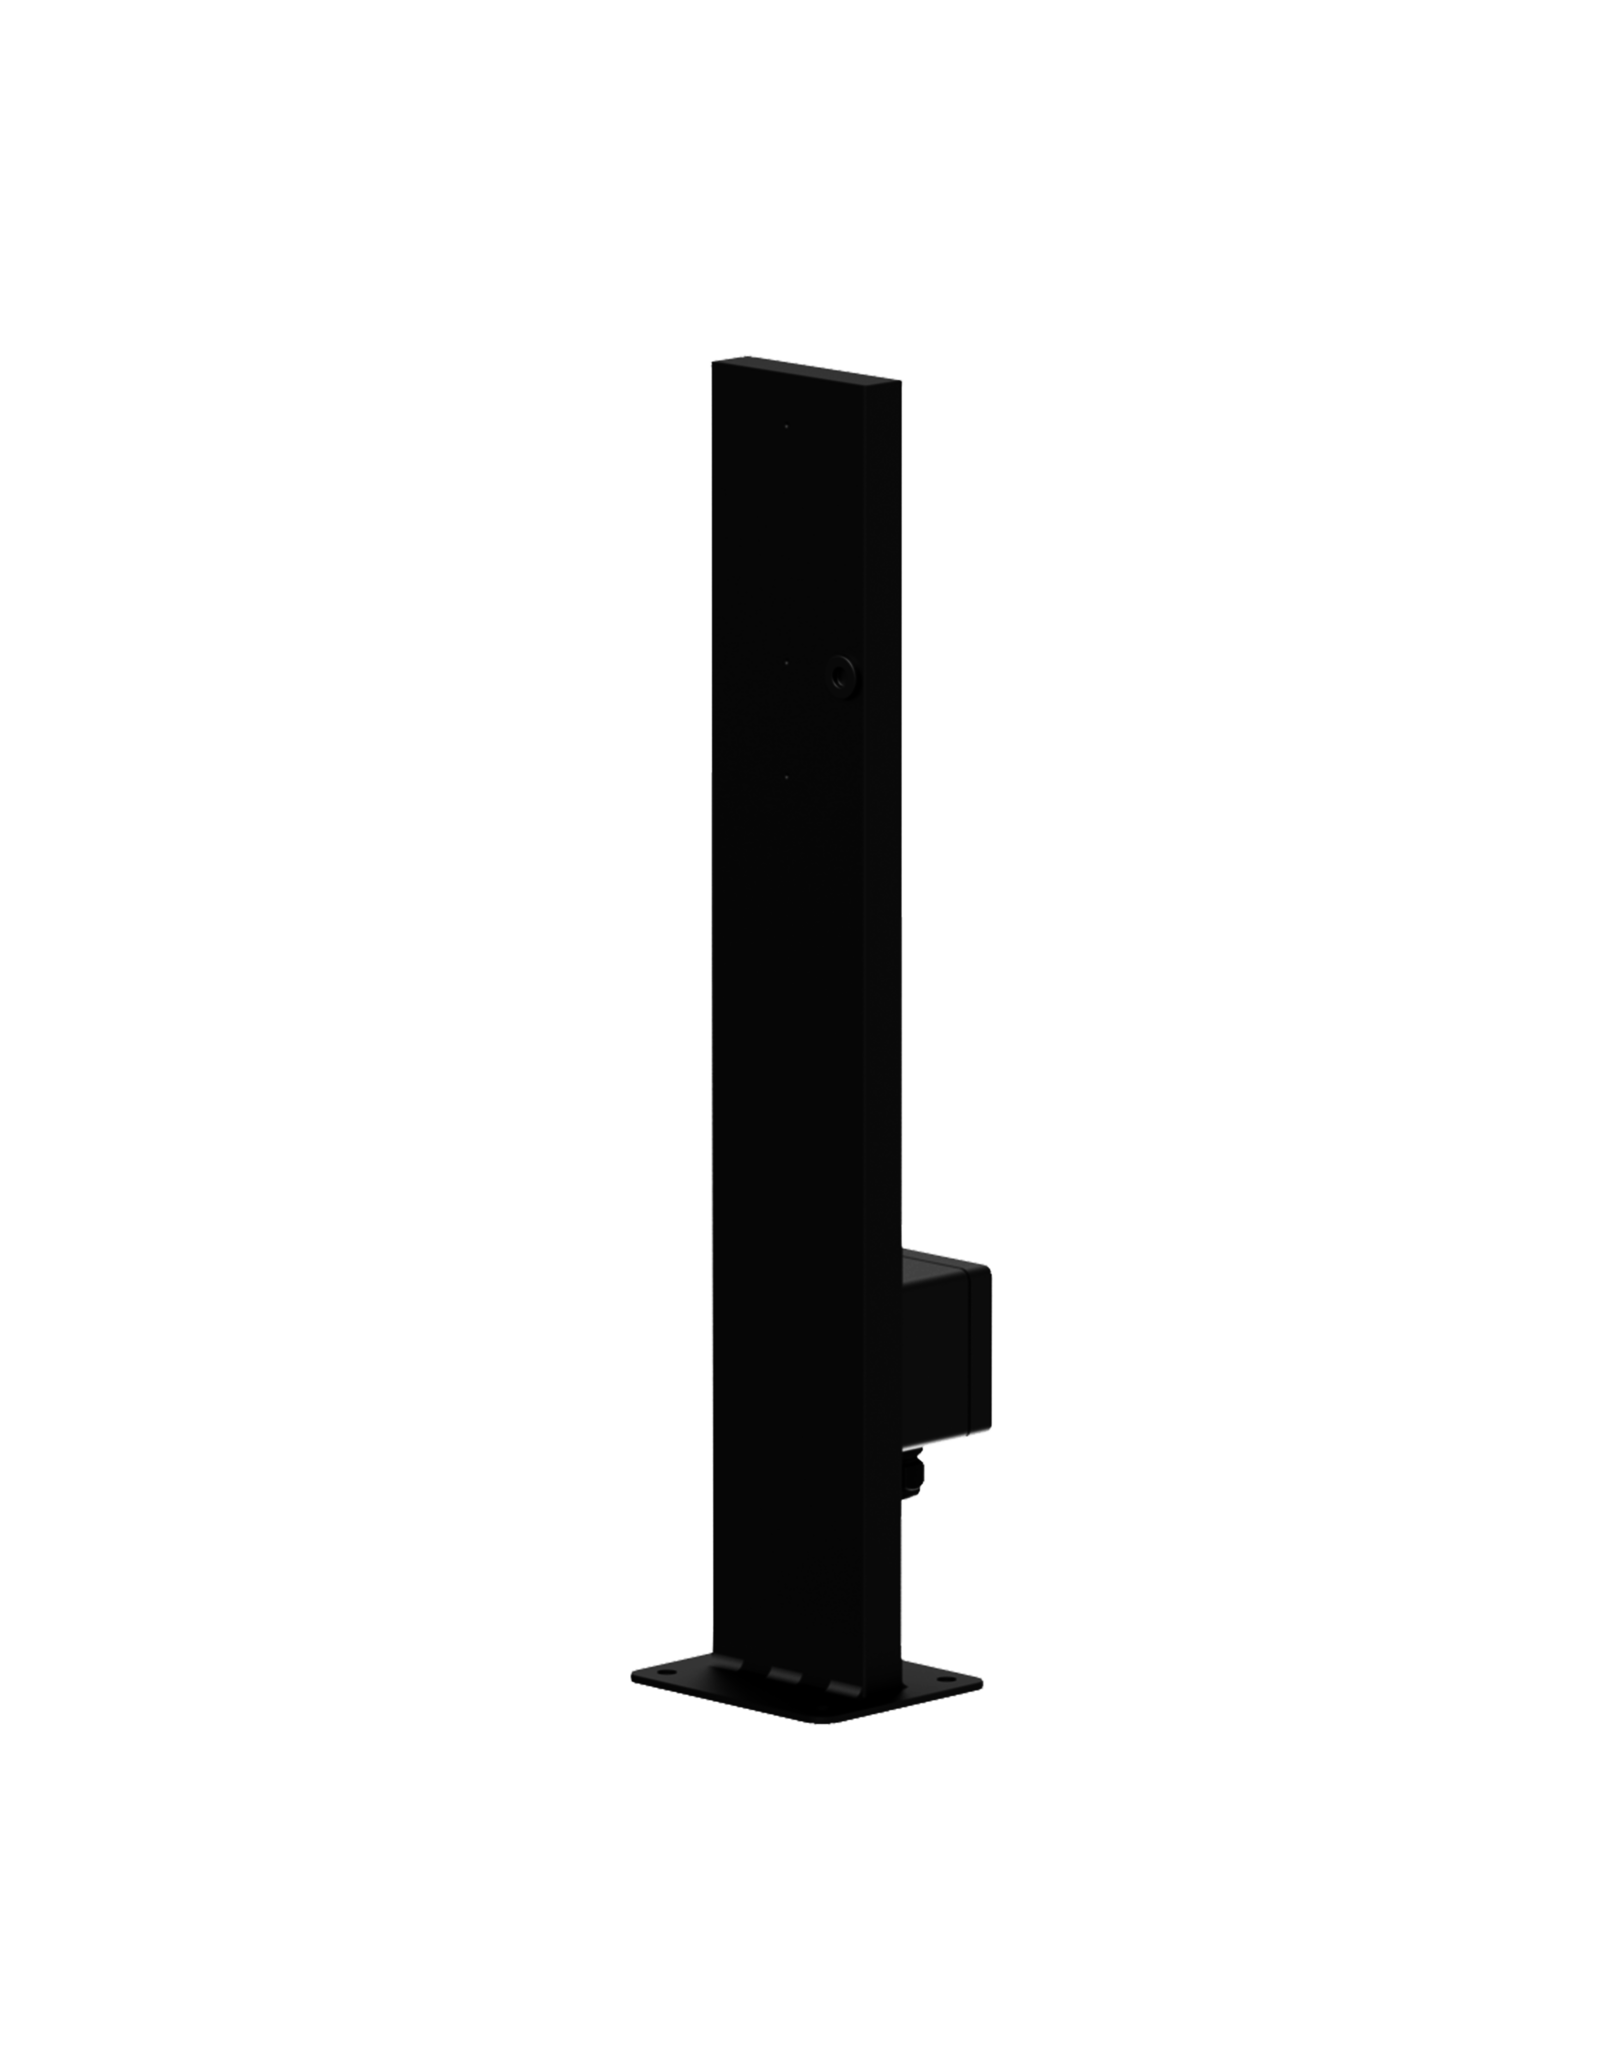 Audac Mounting pole for outdoor speaker - 600 mm height Outdoor black version